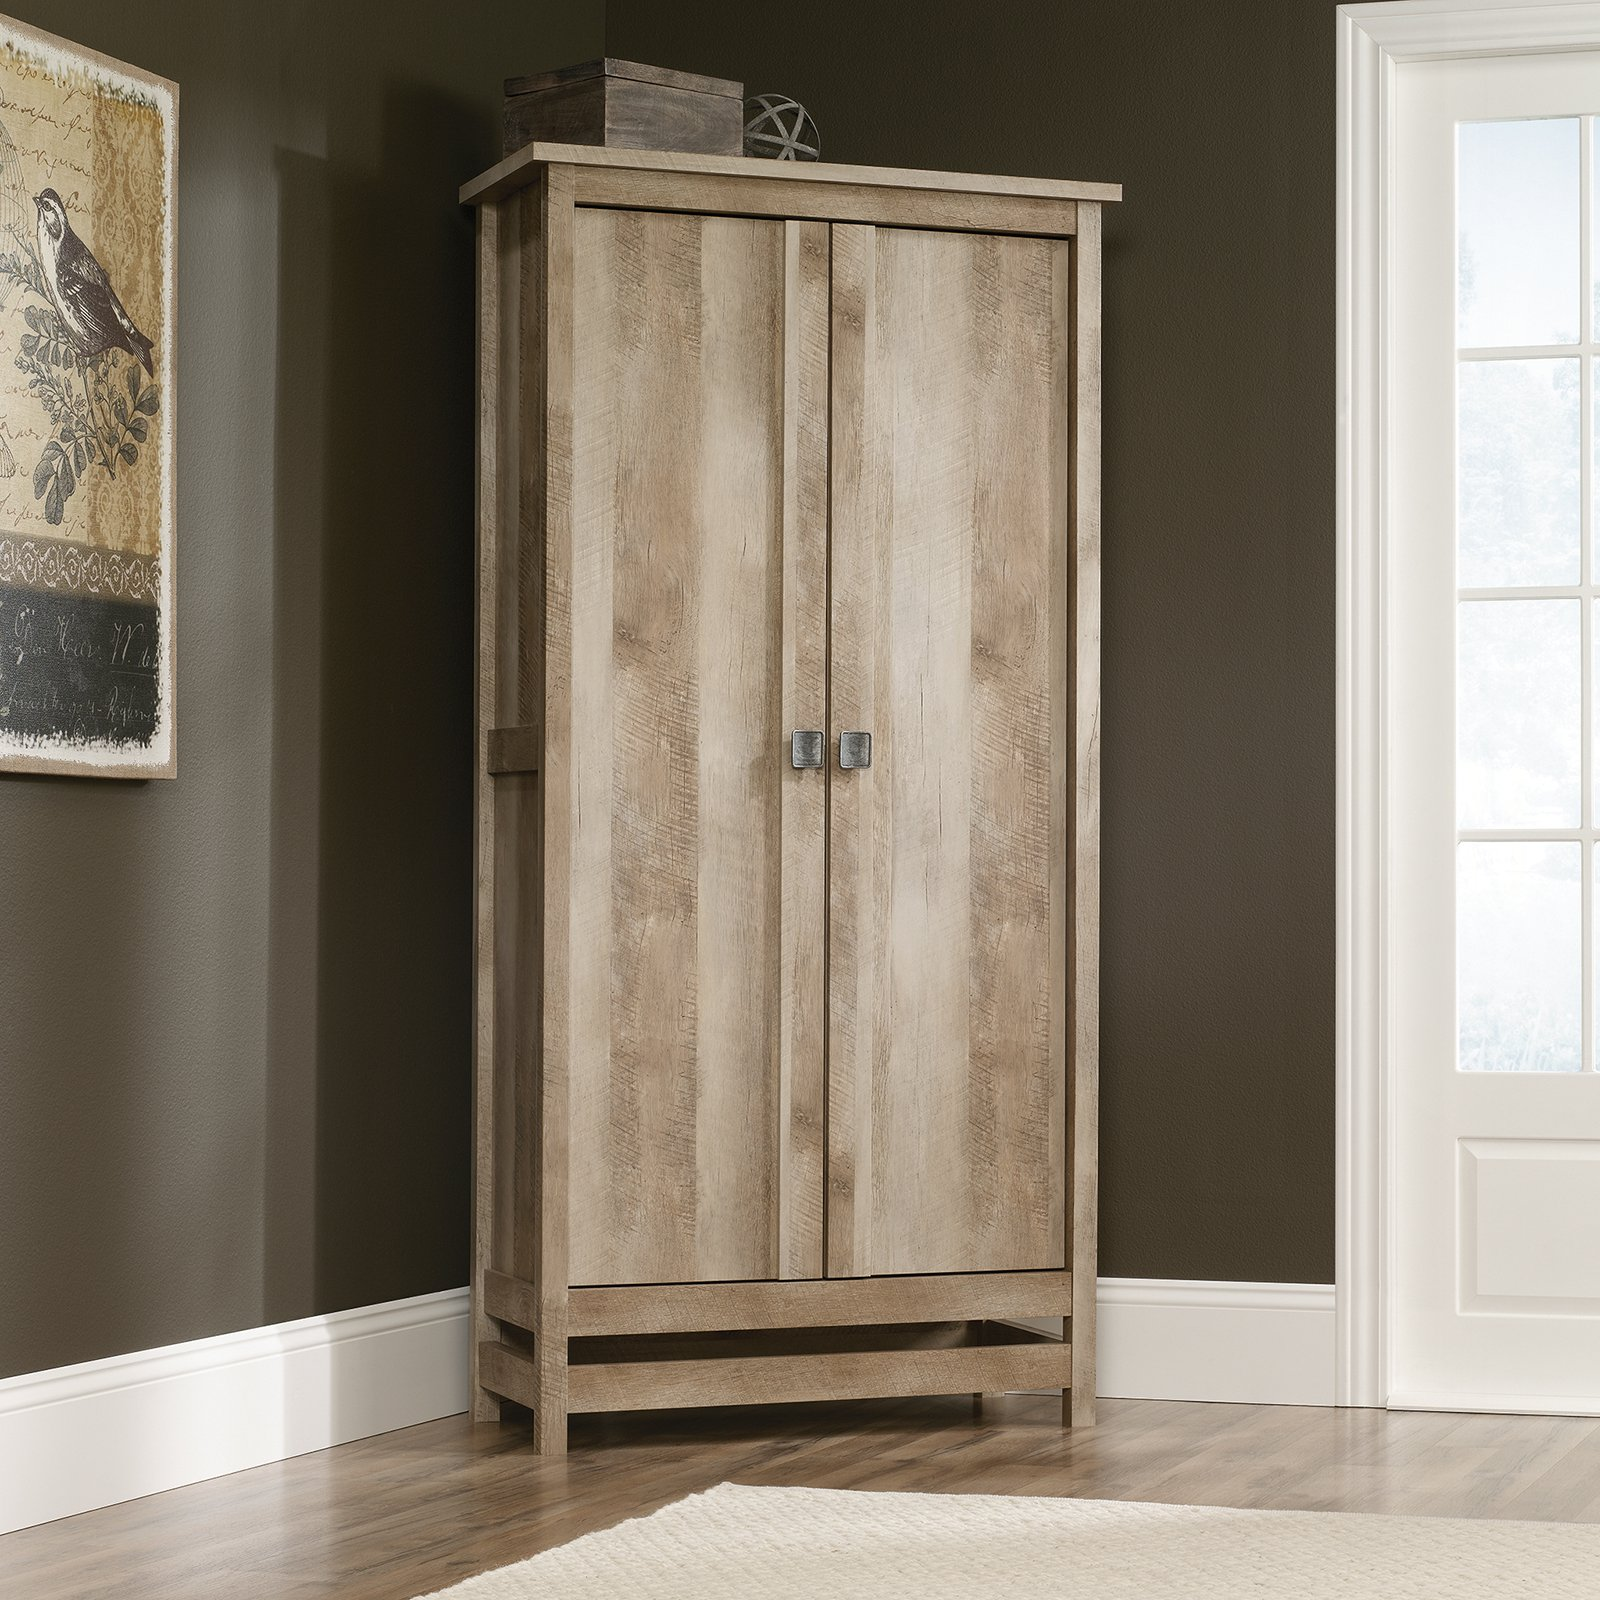 Cannery Bridge Storage Cabinet Armoire Lintel Oak by Sauder